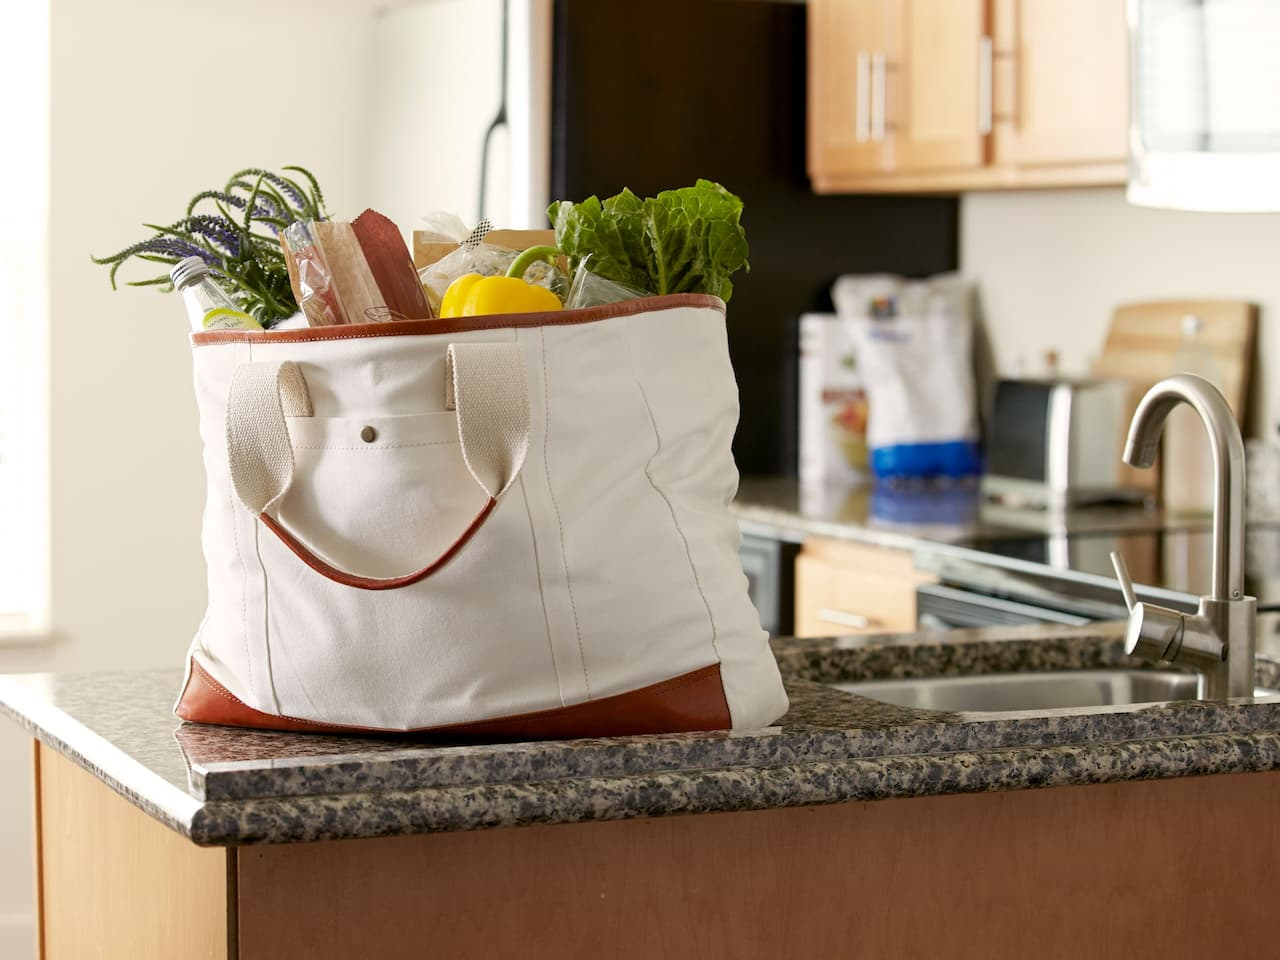 Grocery Shopping Service Hyatt House Atlanta/Cobb Galleria